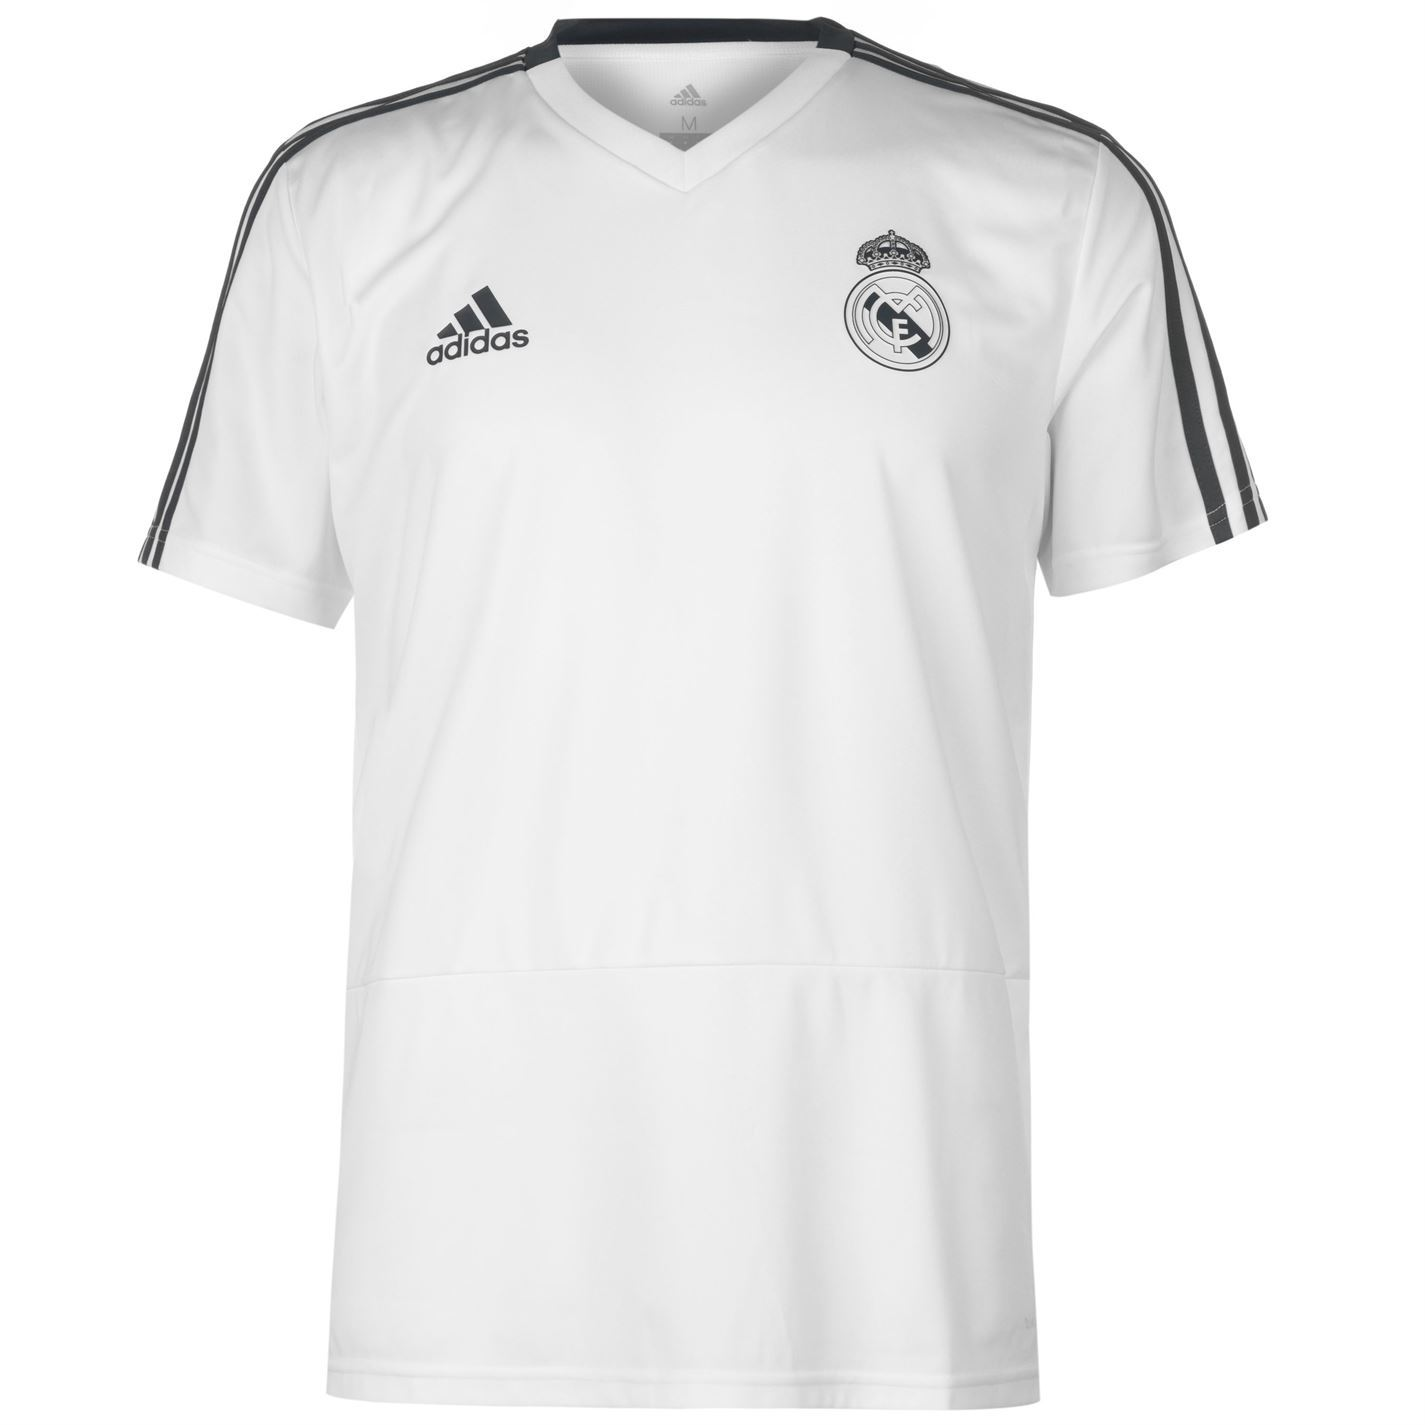 8048718e139 ... adidas Real Madrid Training Jersey Mens White Football Soccer Fan Shirt  Top Tee ...